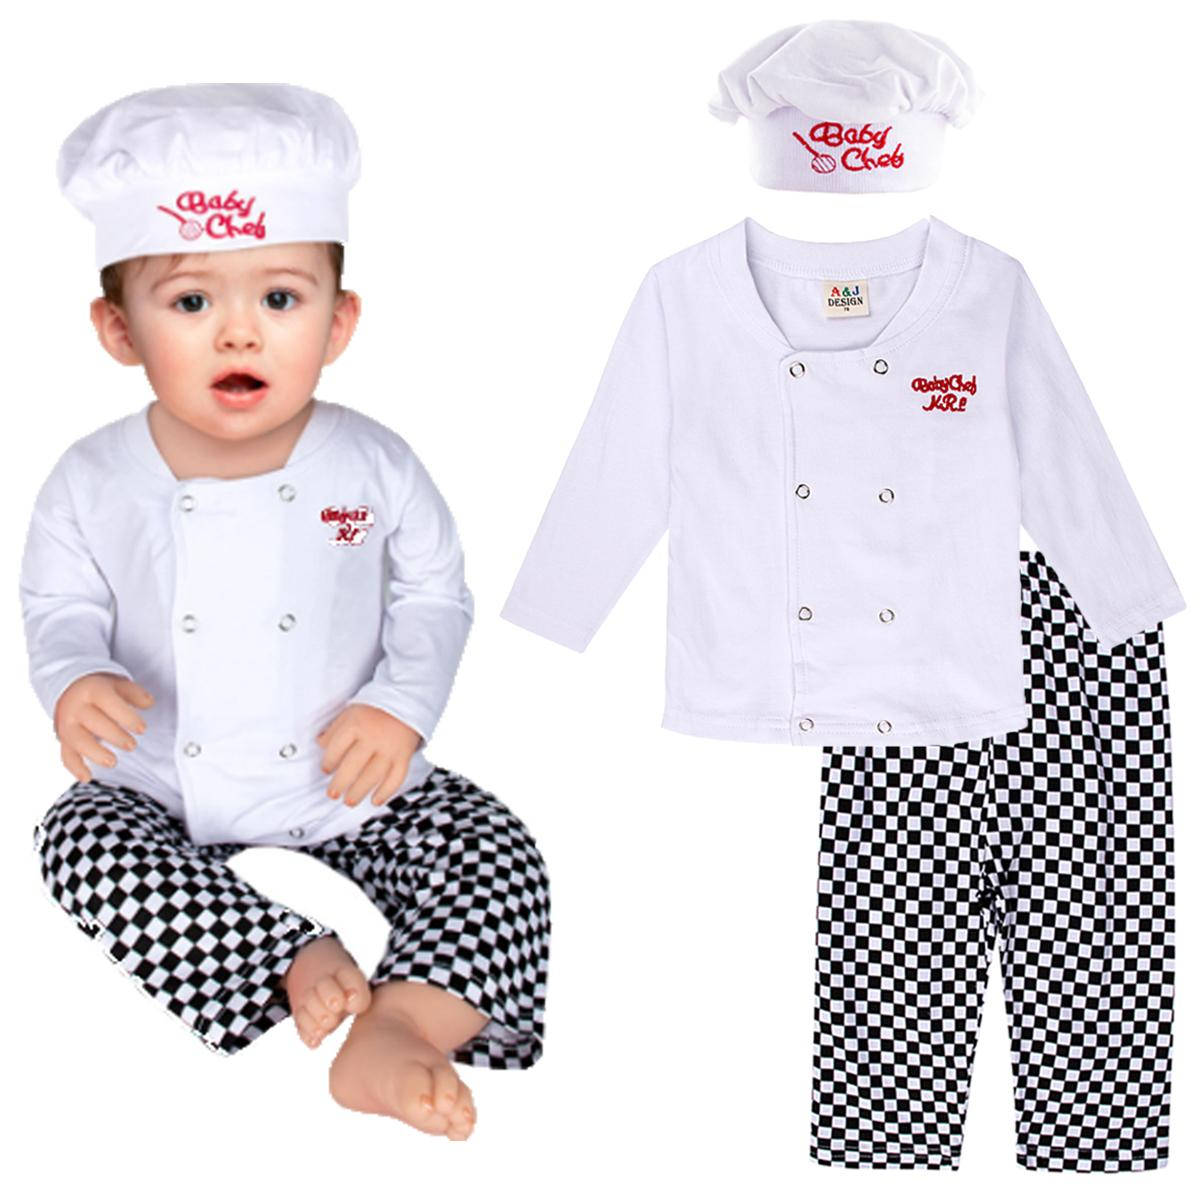 3PCS Baby Boy Girl Cook Chef Outfit Costume Set Top Shirt Pants Hat Halloween